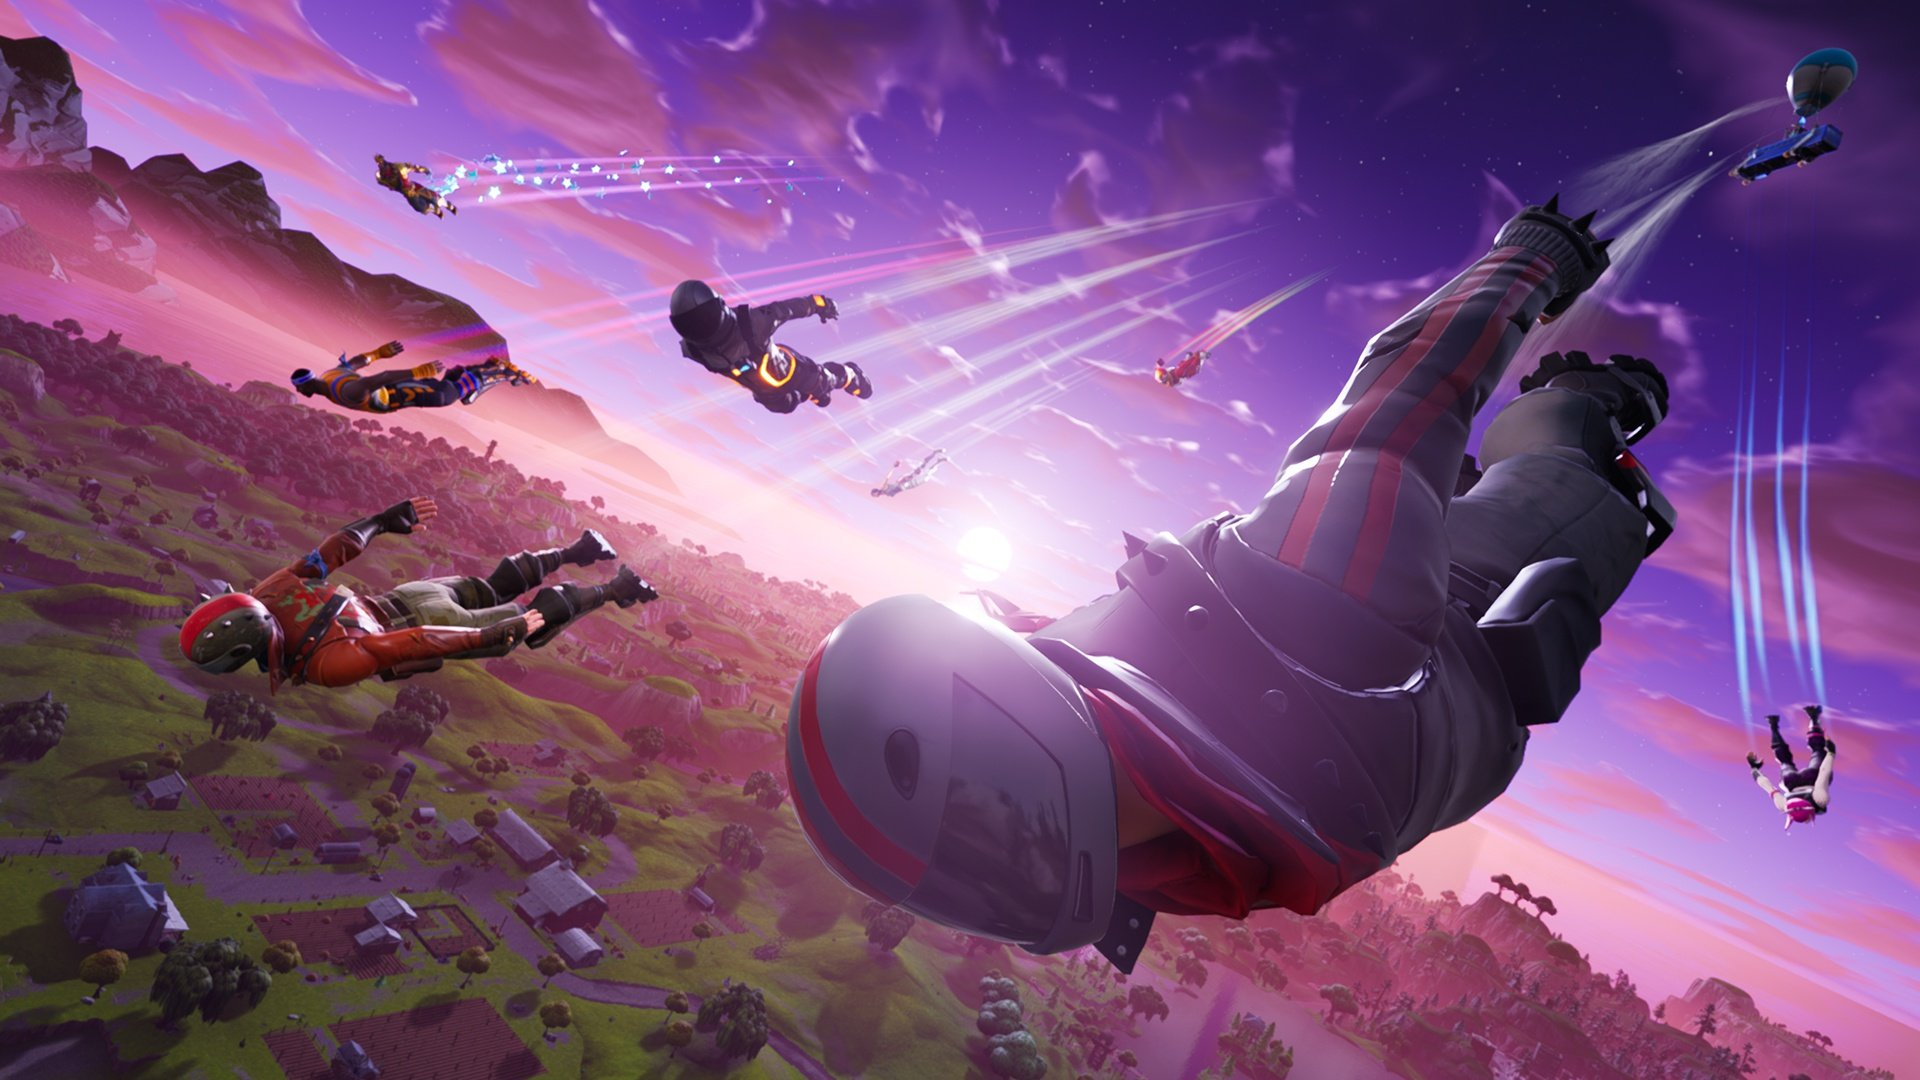 hight resolution of how to merge fortnite accounts on ps4 xbox one and nintendo switch